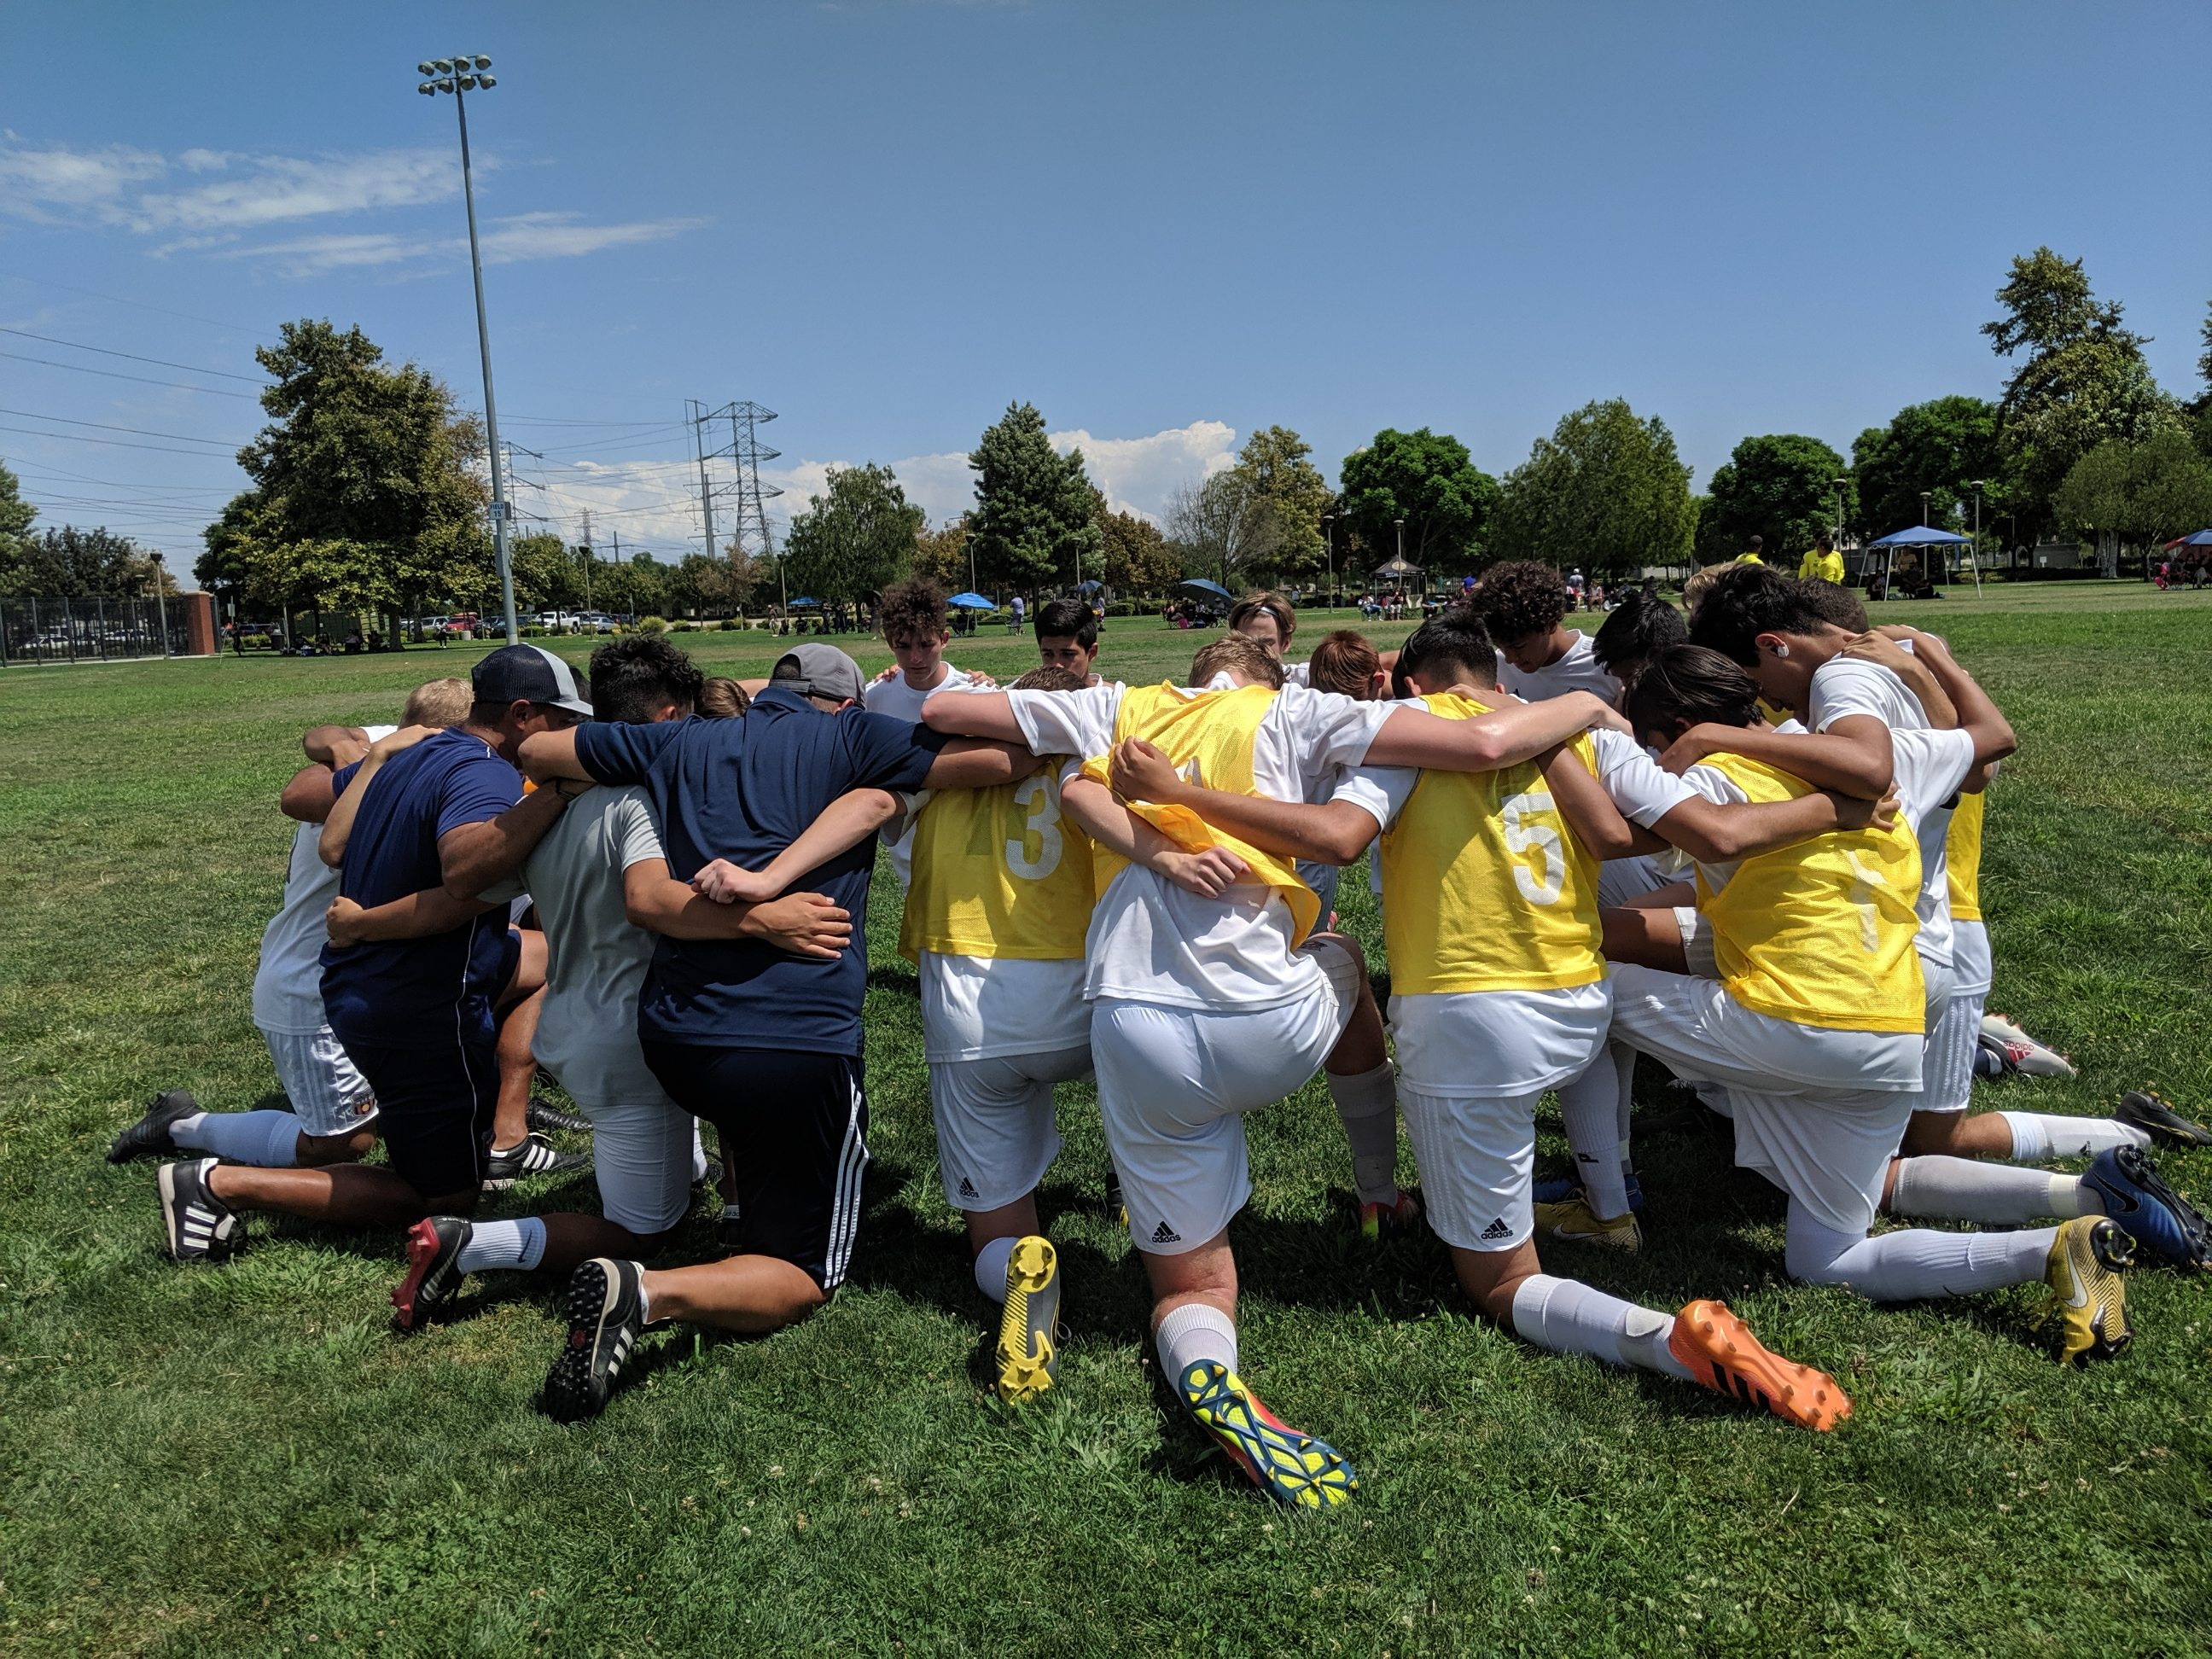 The 2003 Boys Blue team prays before the championship game of the Labor Day Classic tournament in Chino Hills, California on Sept. 2, 2019.